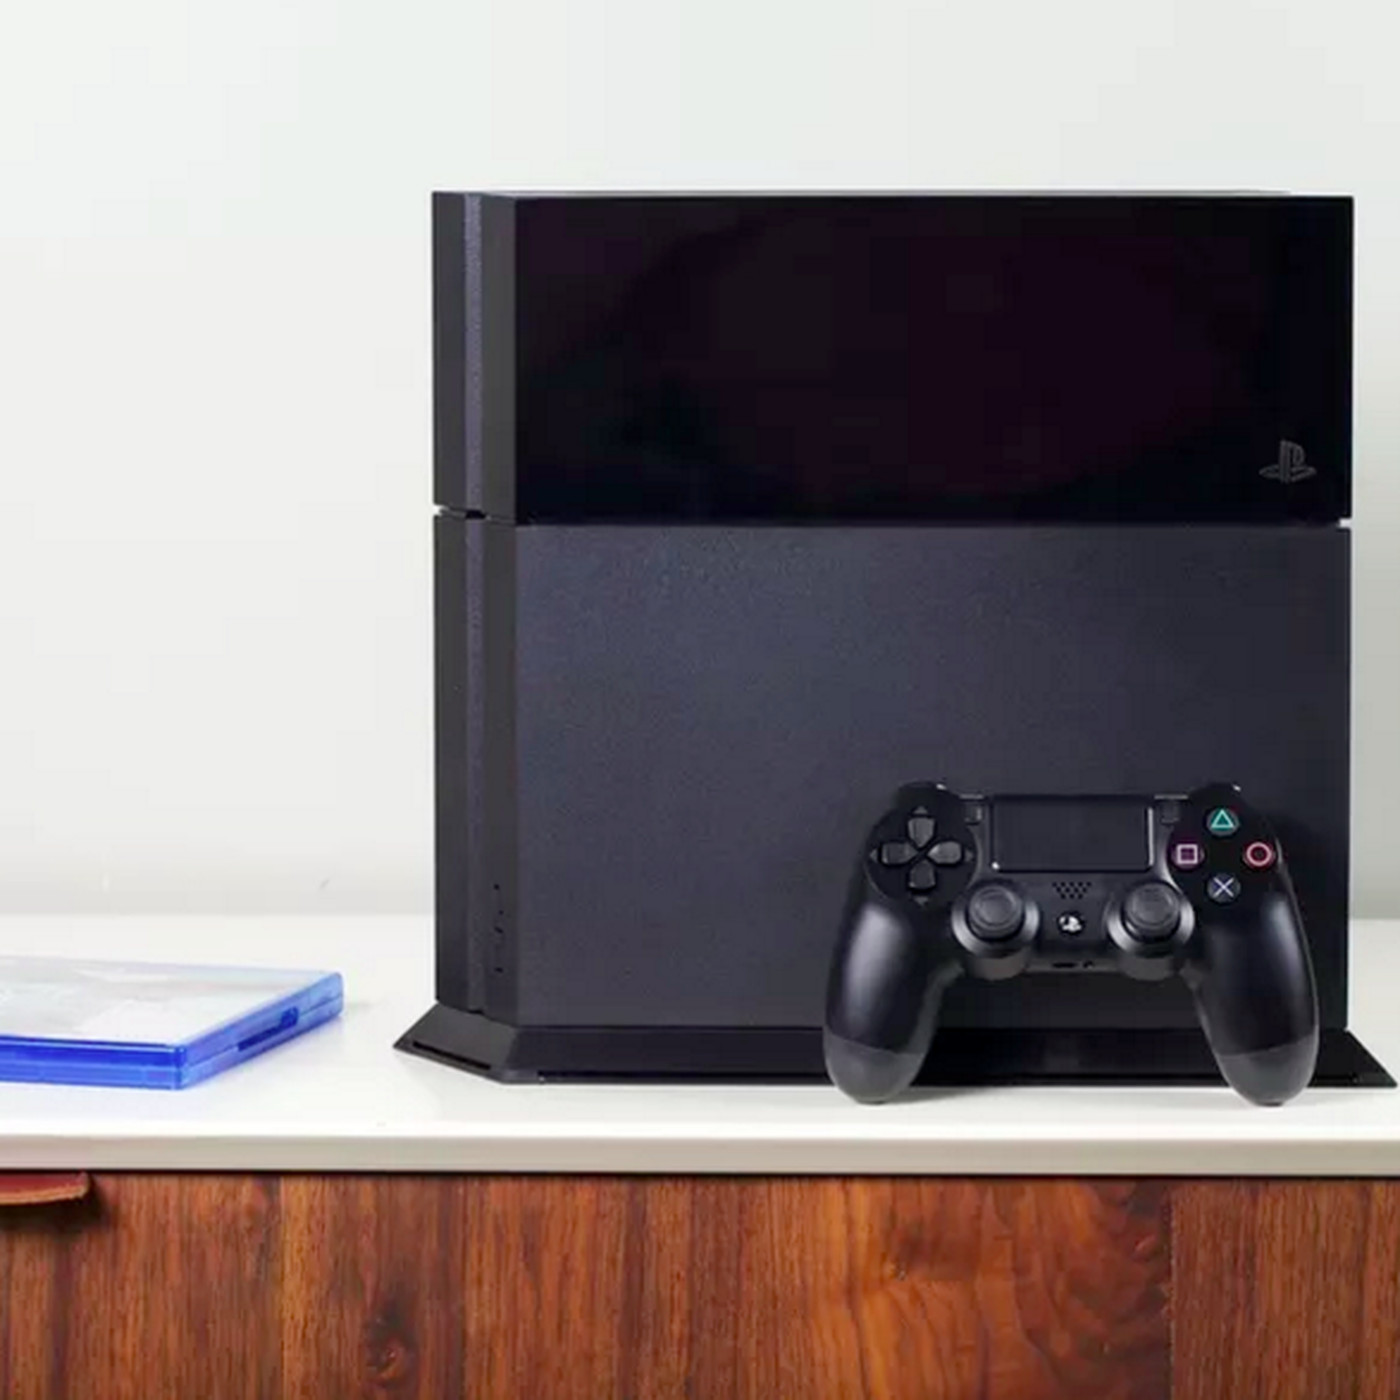 The PS4 gets hacked for homebrew software and PS2 emulation